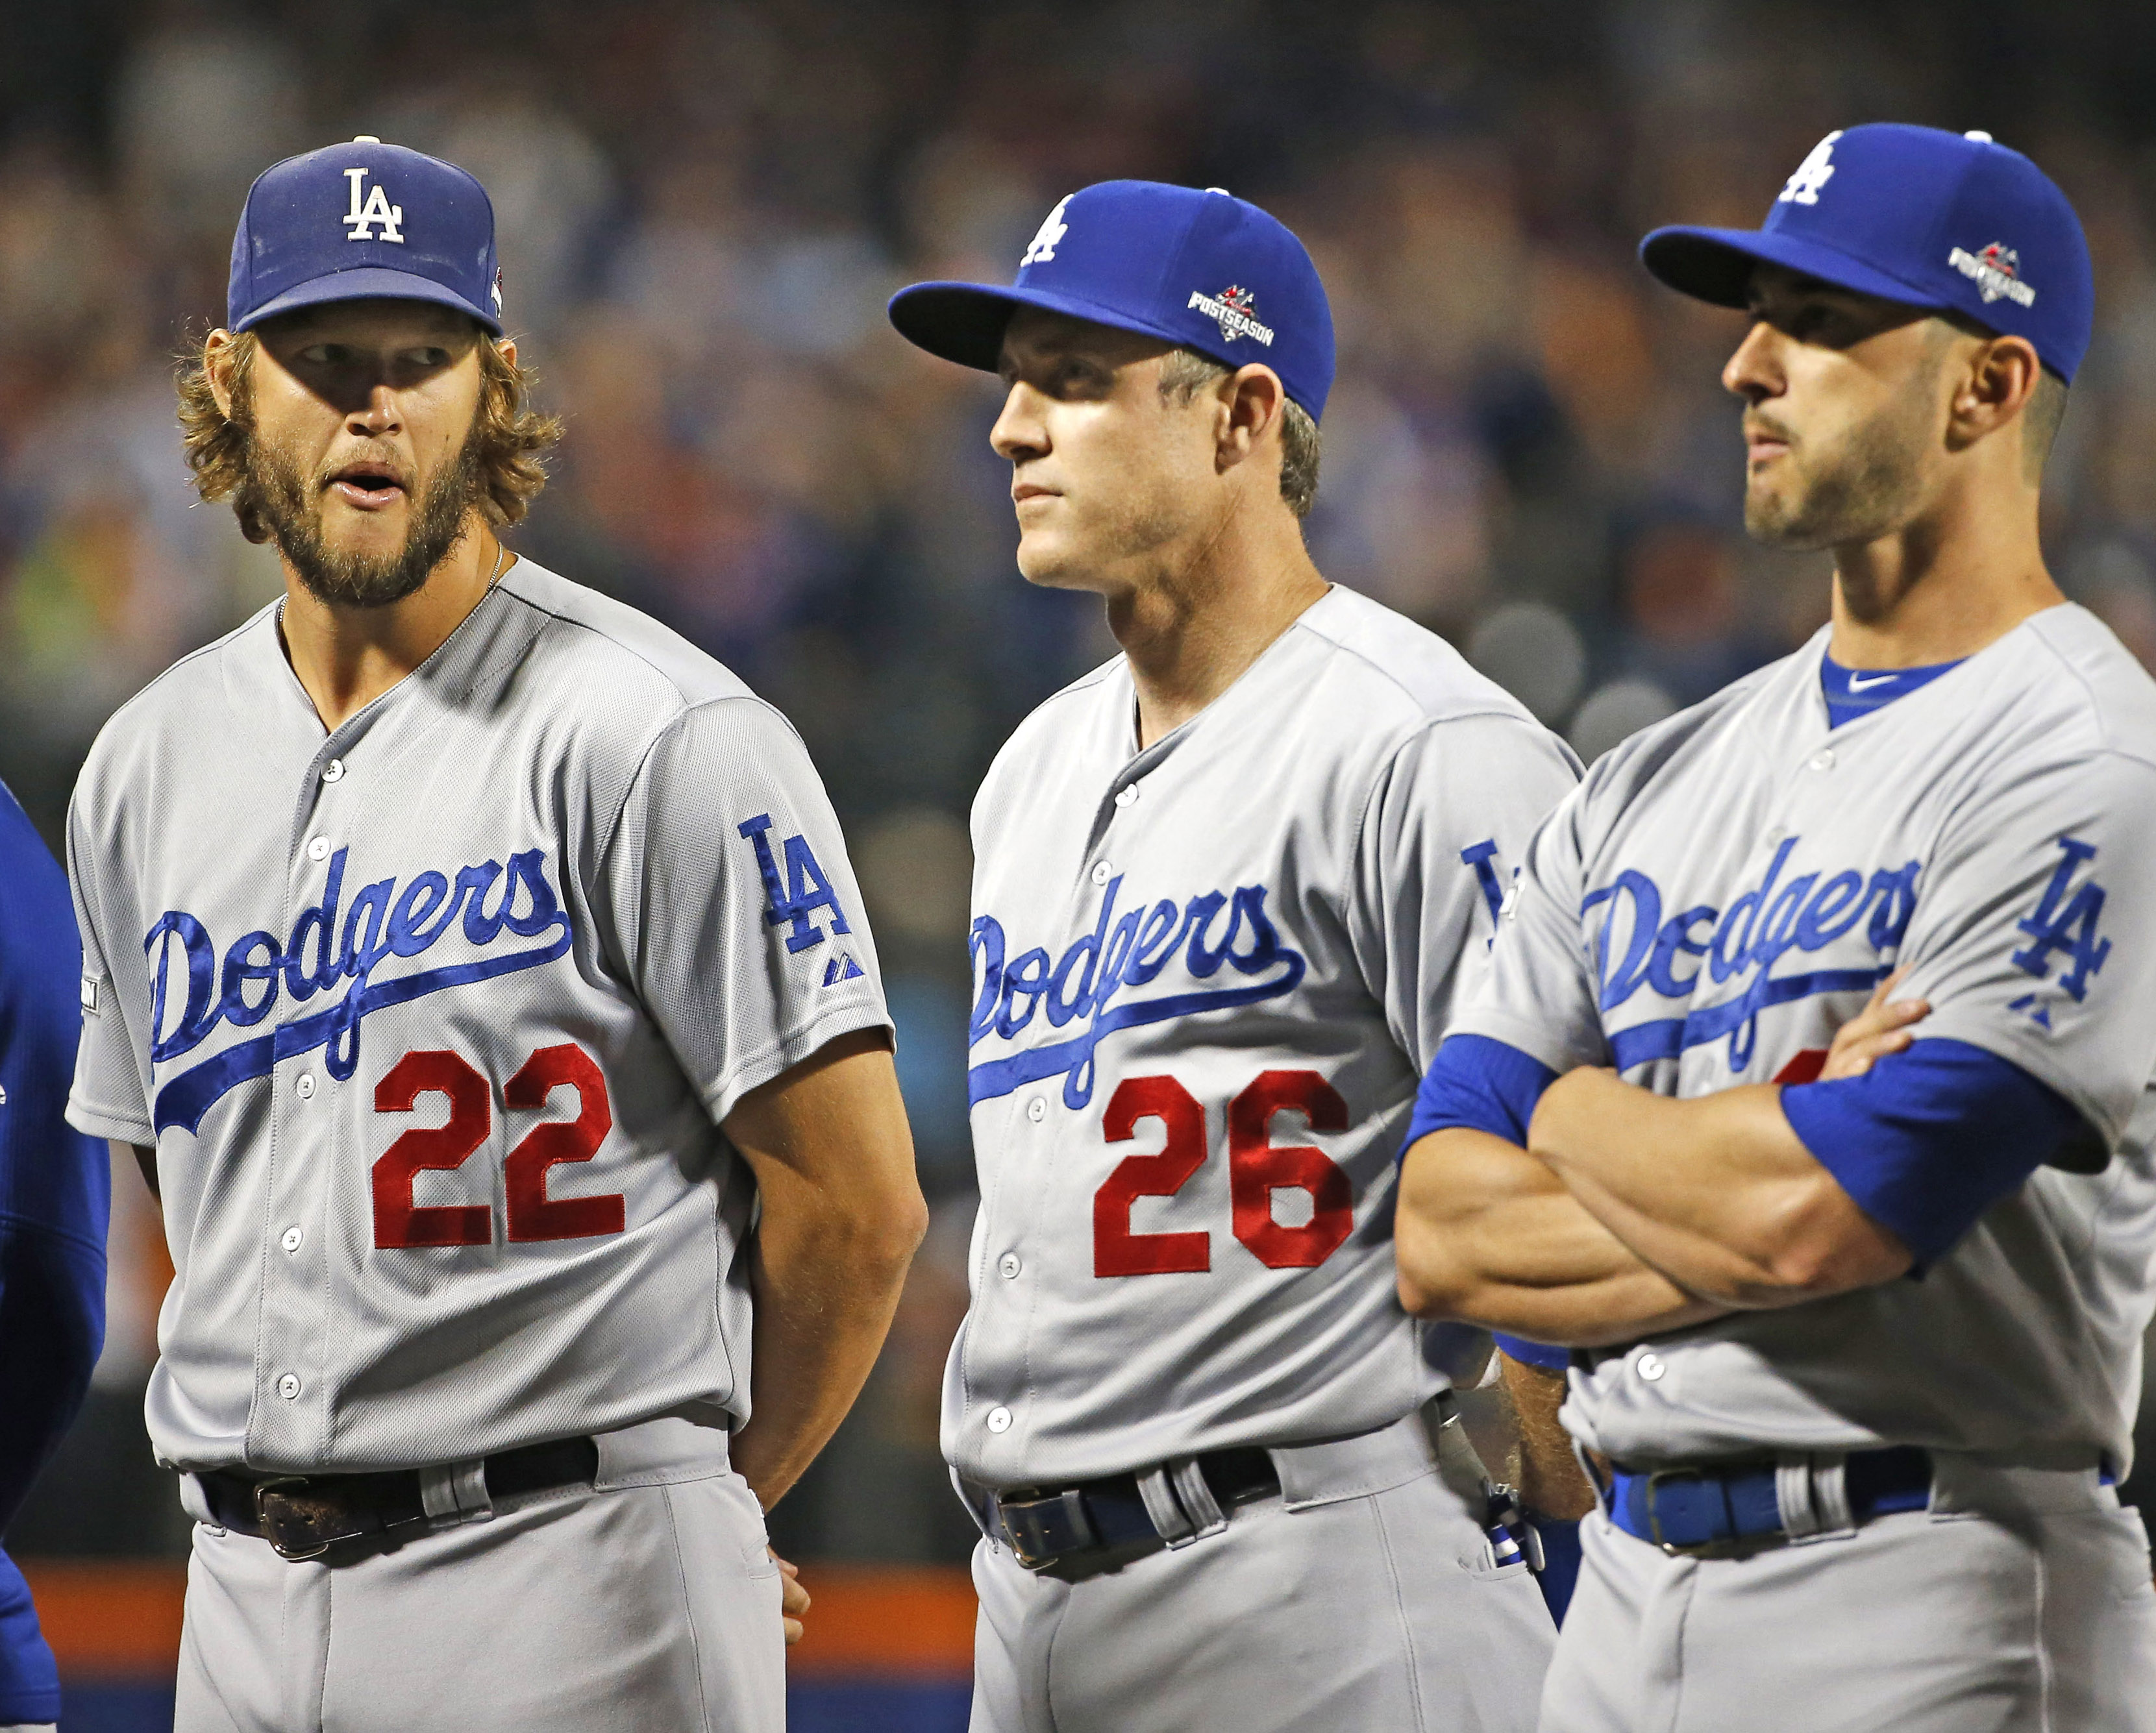 Los Angeles Dodgers pitcher Clayton Kershaw (22) glances at Los Angeles Dodgers' Chase Utley (26) as the crowd boos Utley during baseline introductions for baseball's Game 3 of the National League Division Series against the New York Mets, Monday, Oct. 12